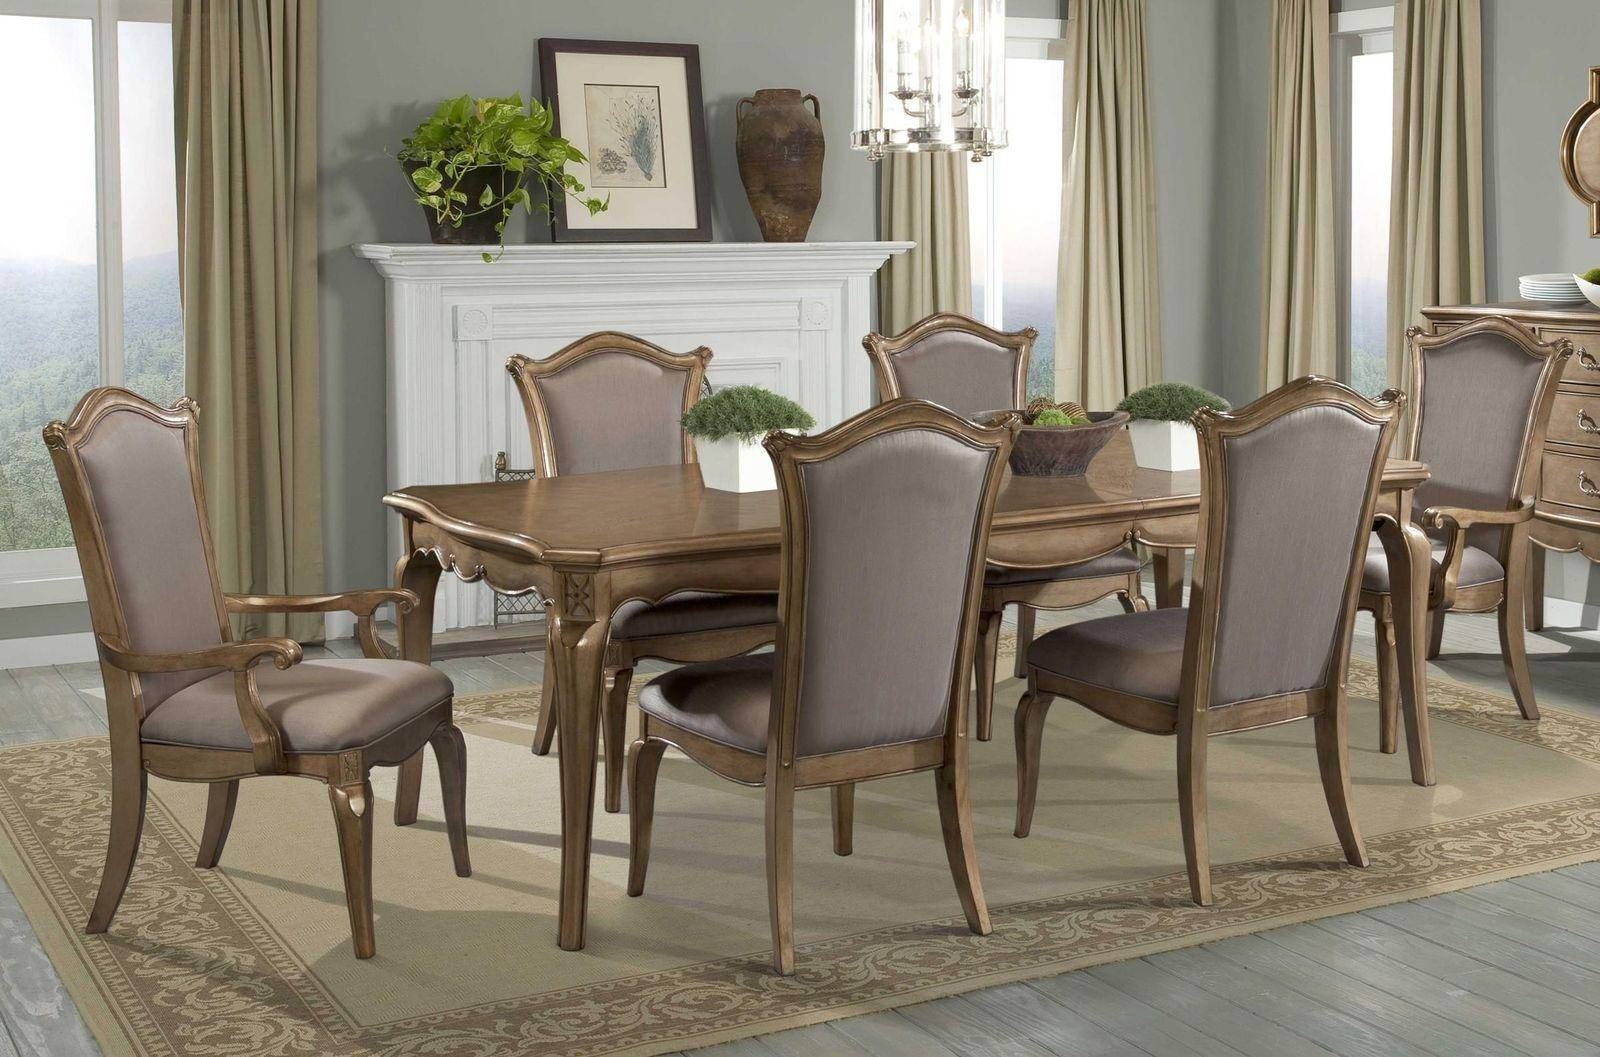 Chambord 7pc Champagne Gold Wood Leaf Dining Table Set Faux Silk Chair 1828 92 1828ax2 1828sx4